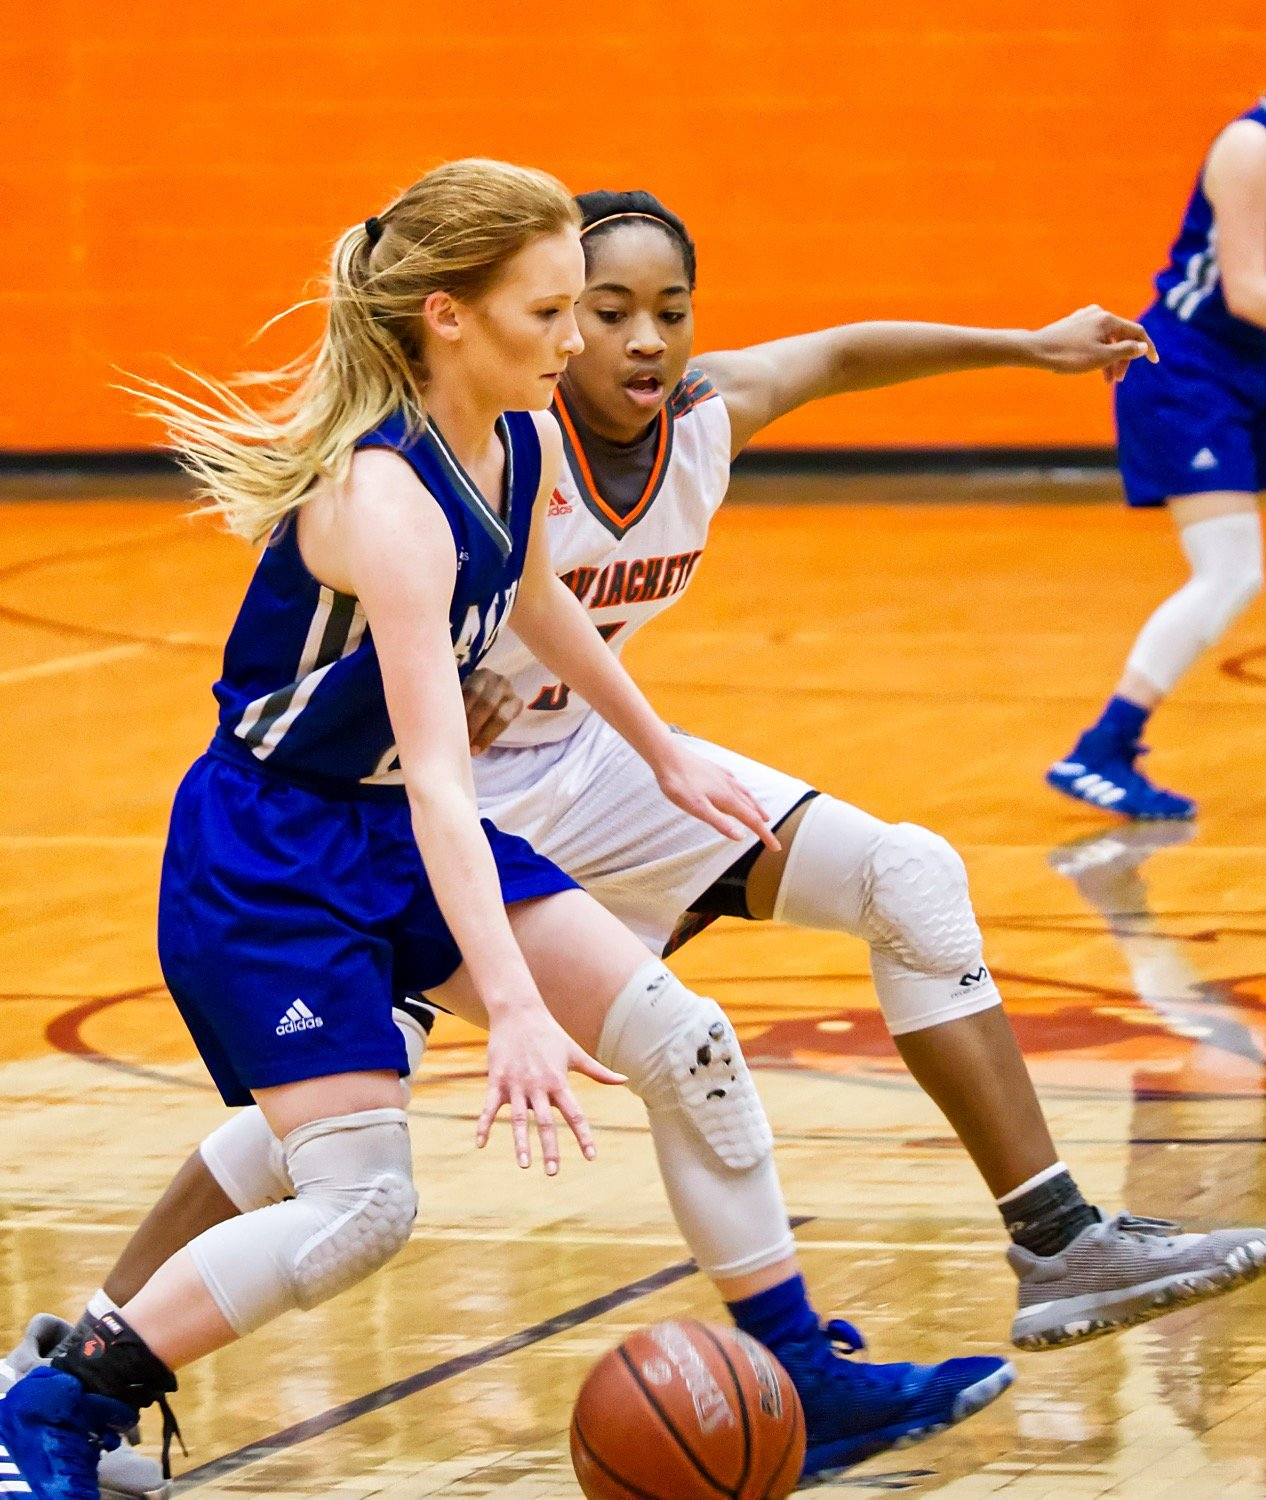 Sabria Dean stays step for step guarding the Rains guard in the backcourt.